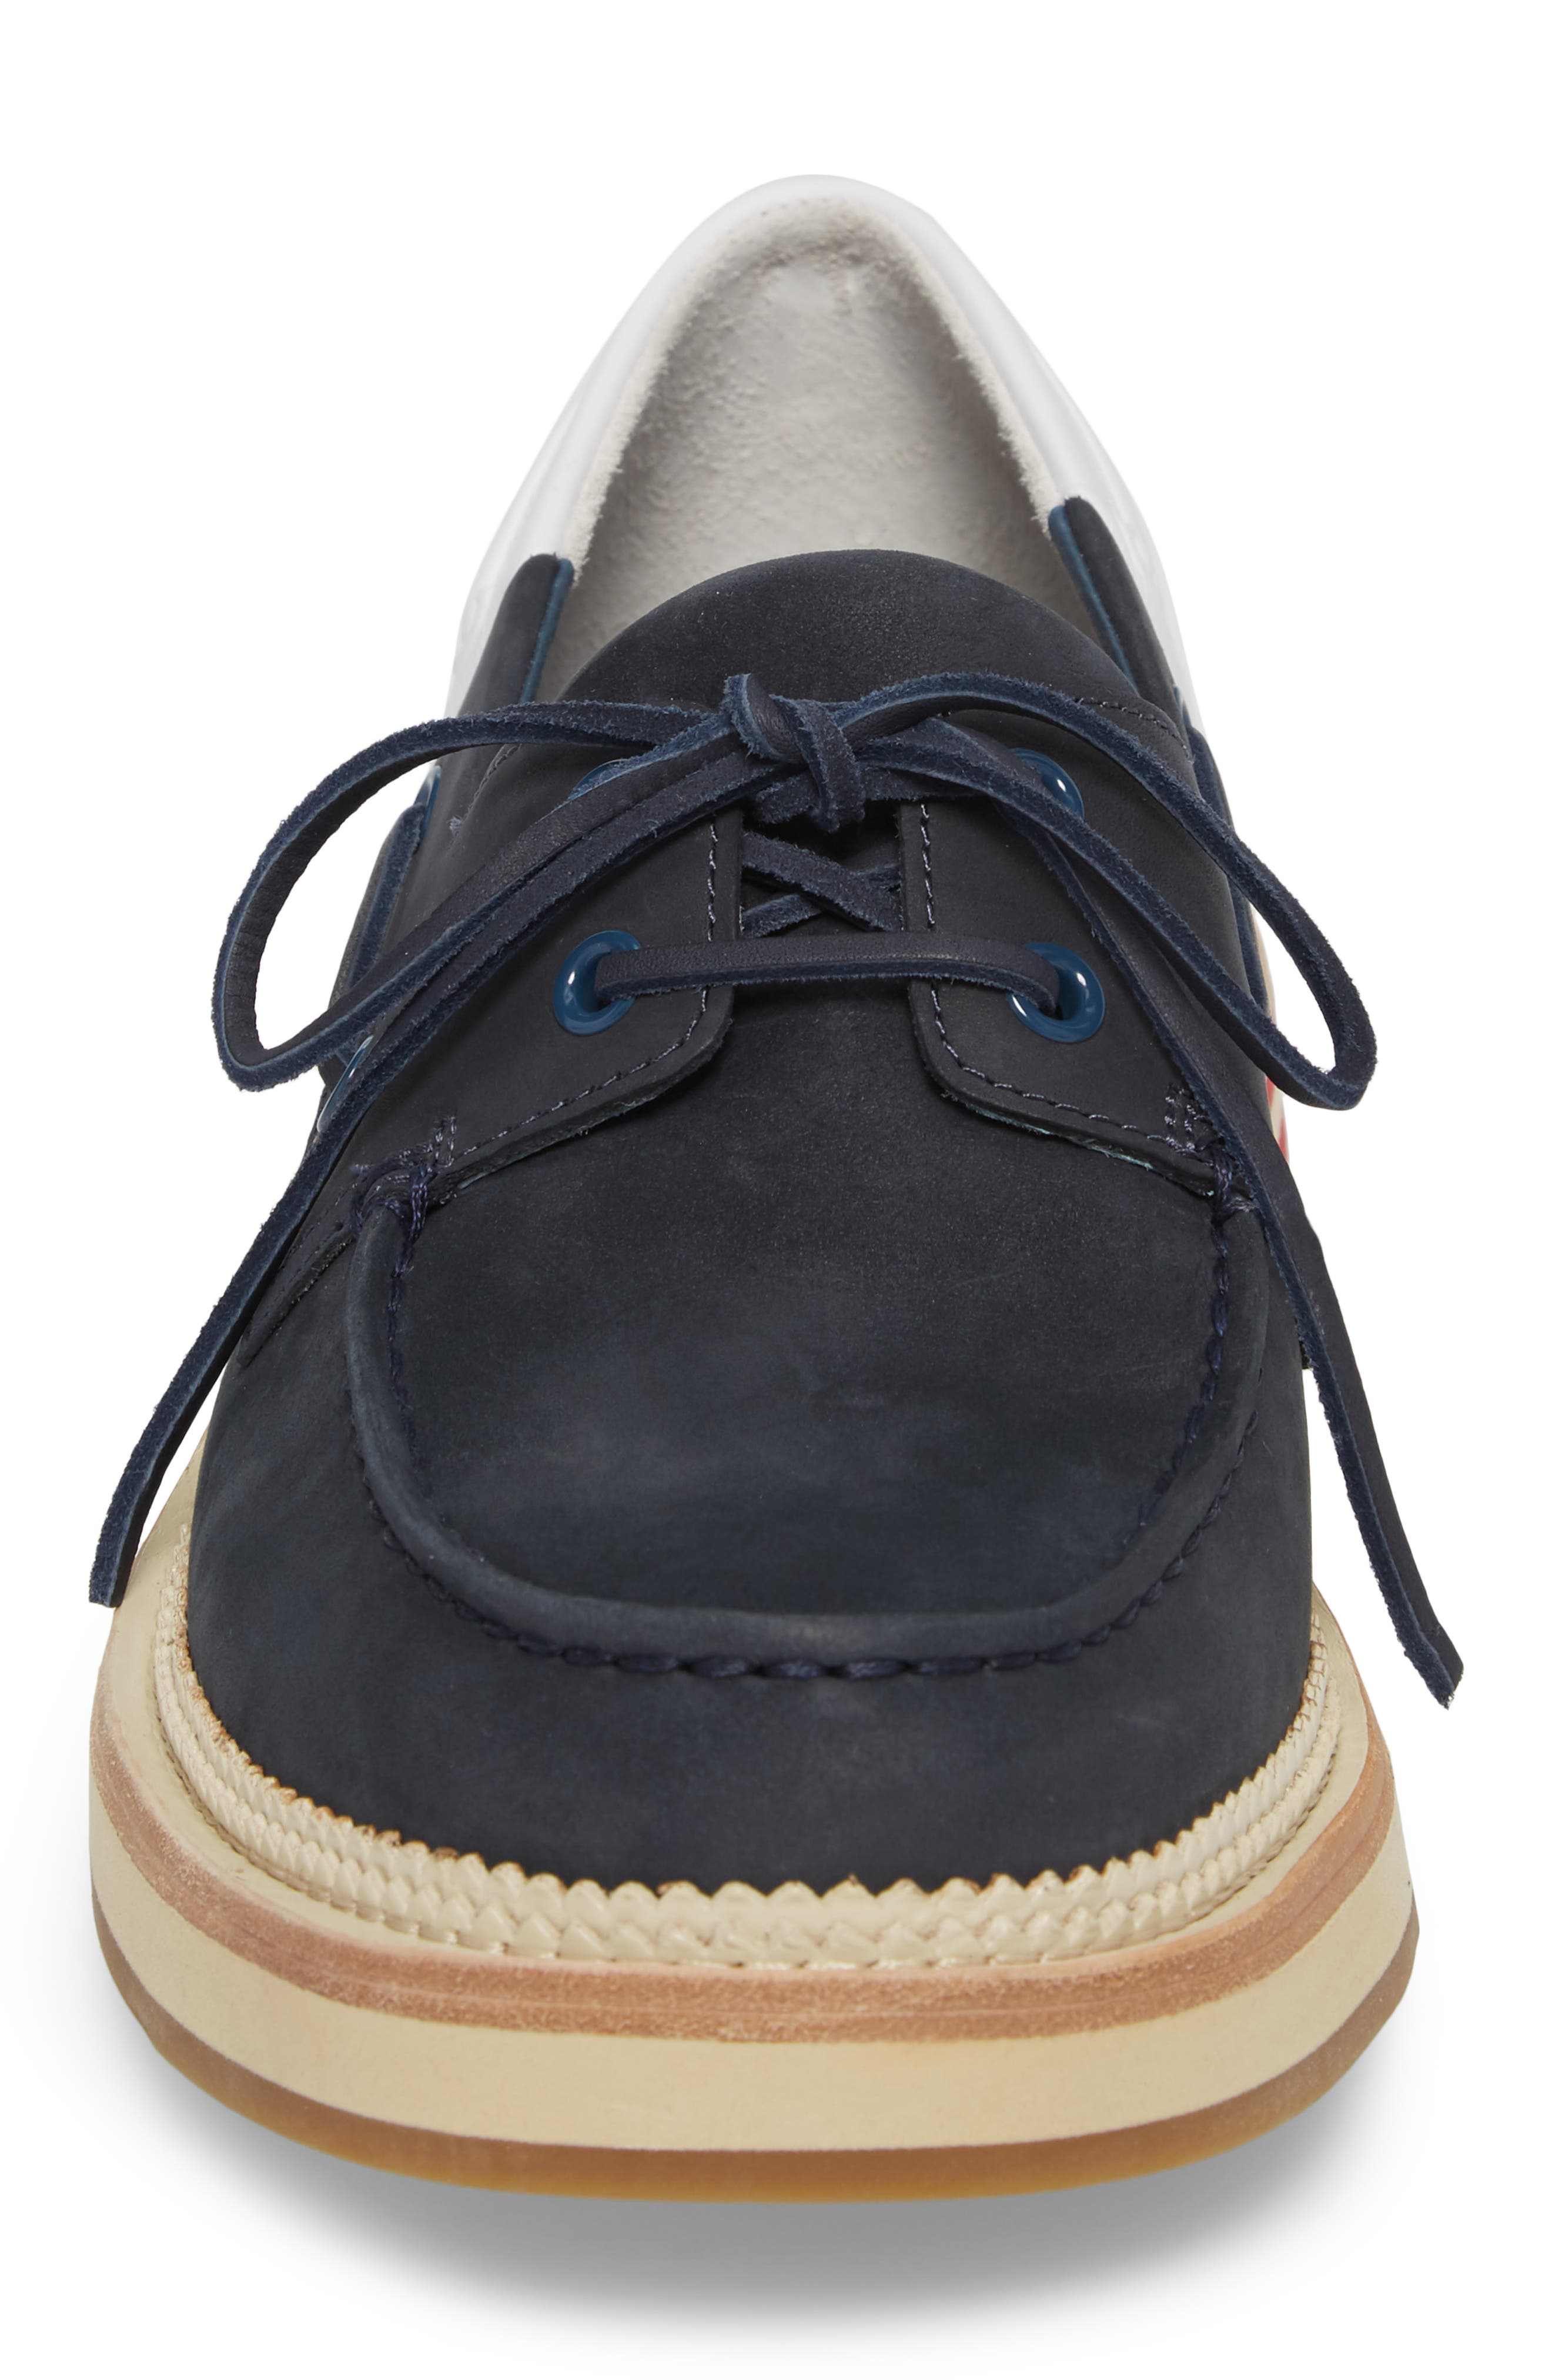 Cloud Colorblocked Boat Shoe,                             Alternate thumbnail 4, color,                             400